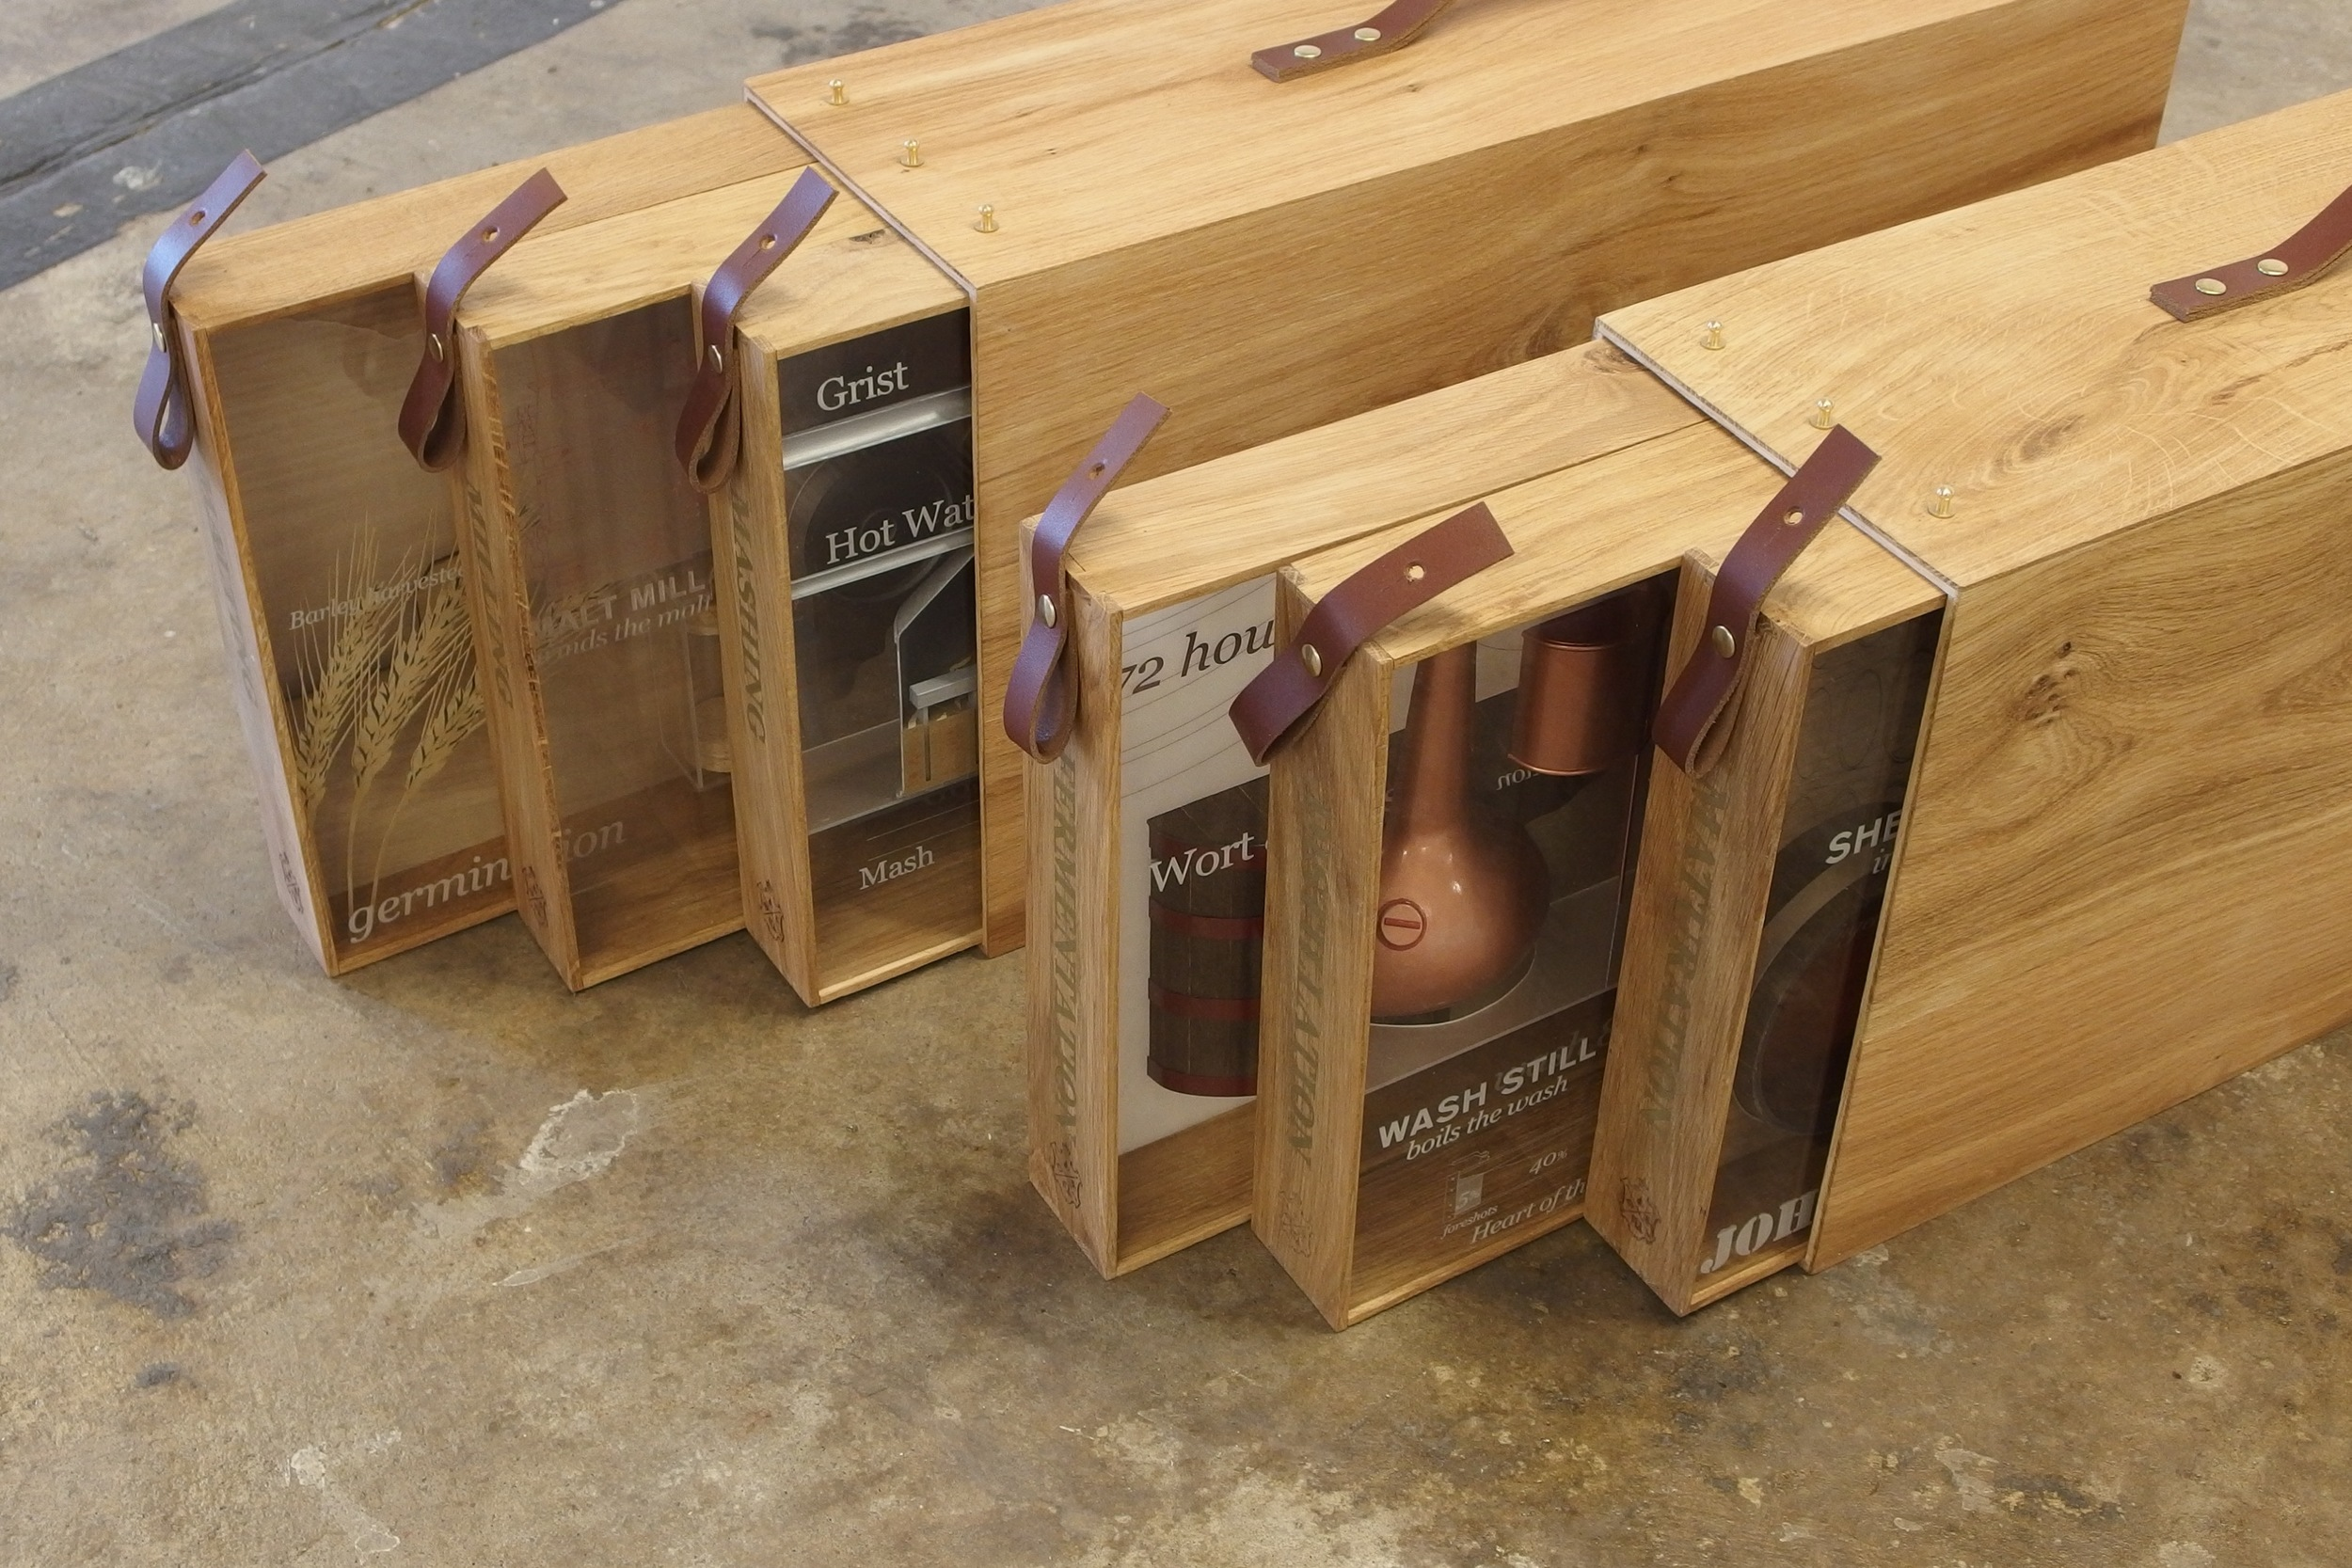 The two new Distillery Boxes